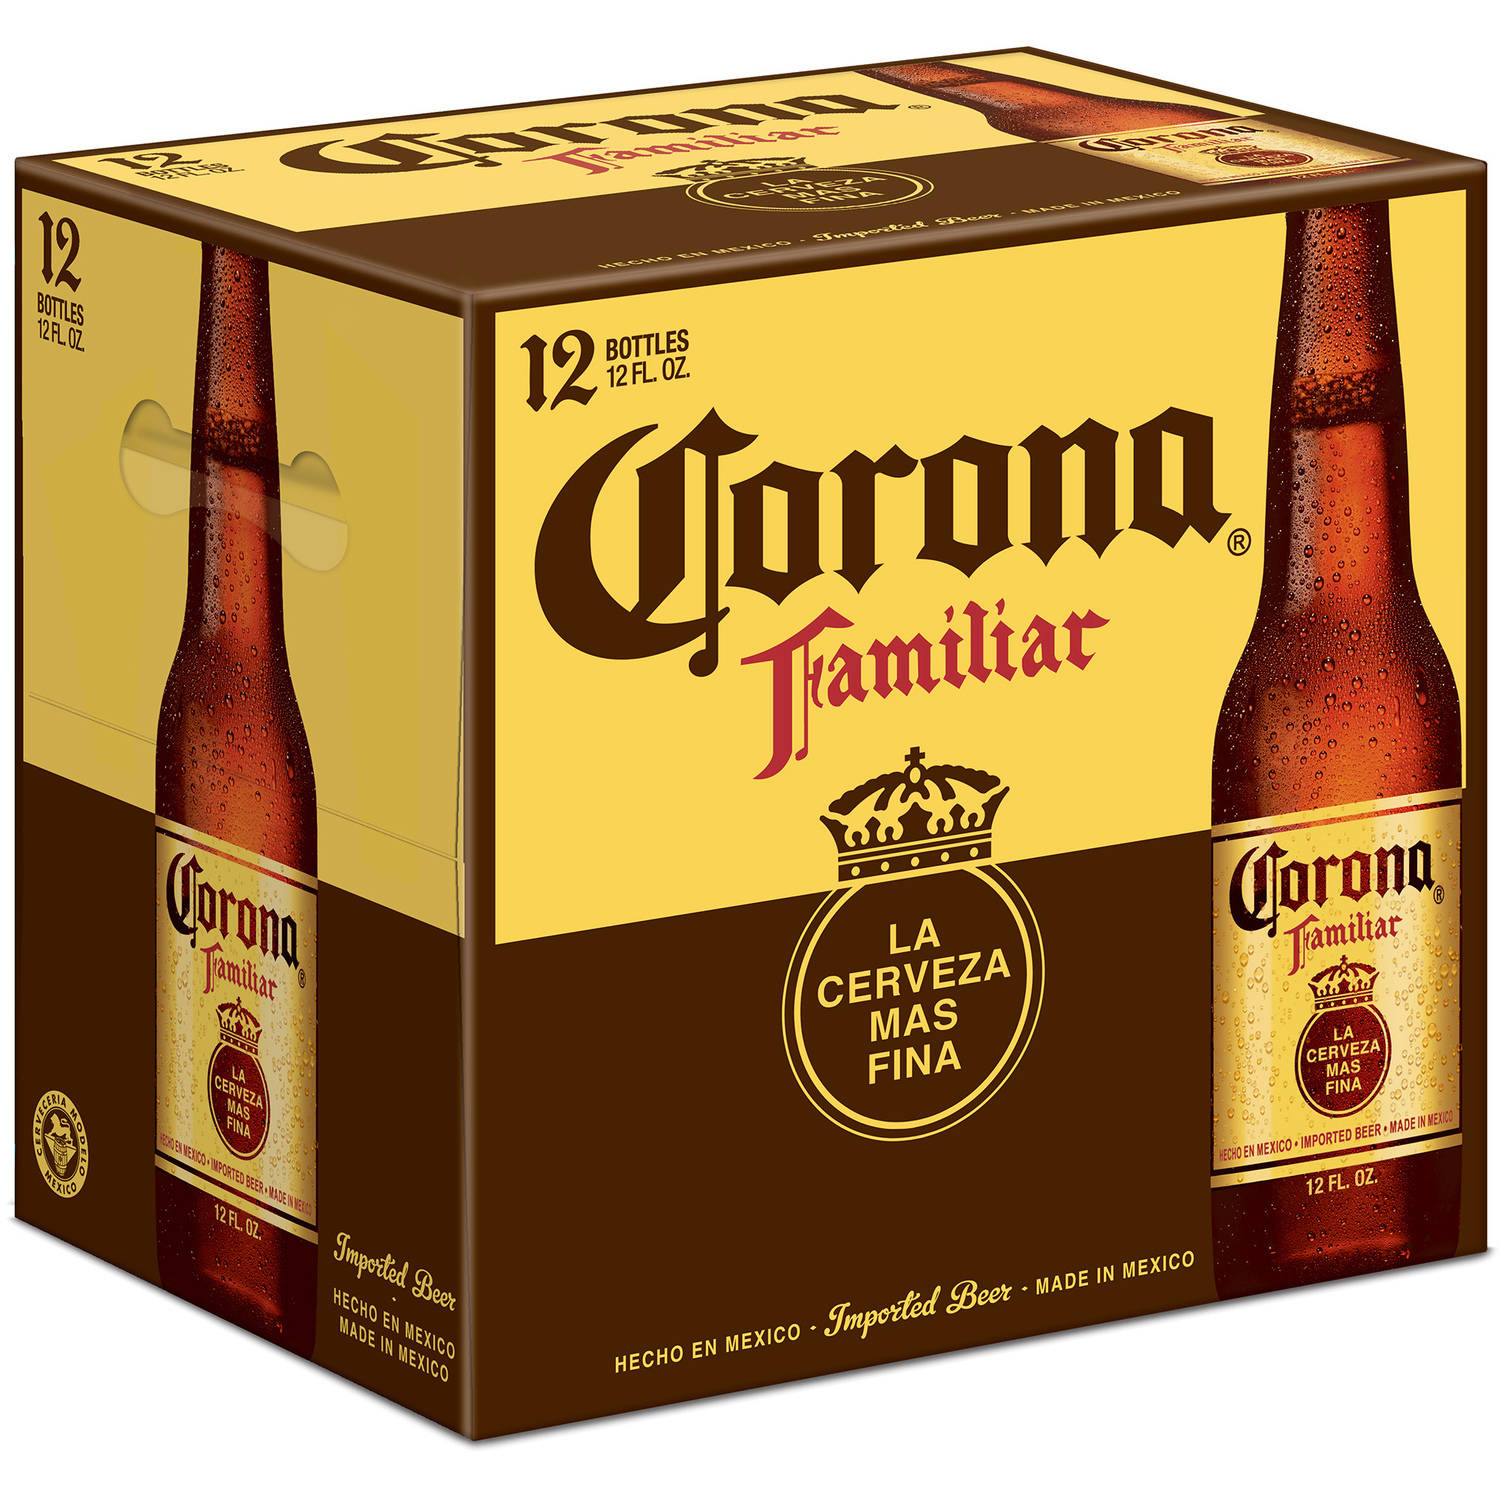 Corona Familiar Beer, 12 pack, 12 fl oz bottles